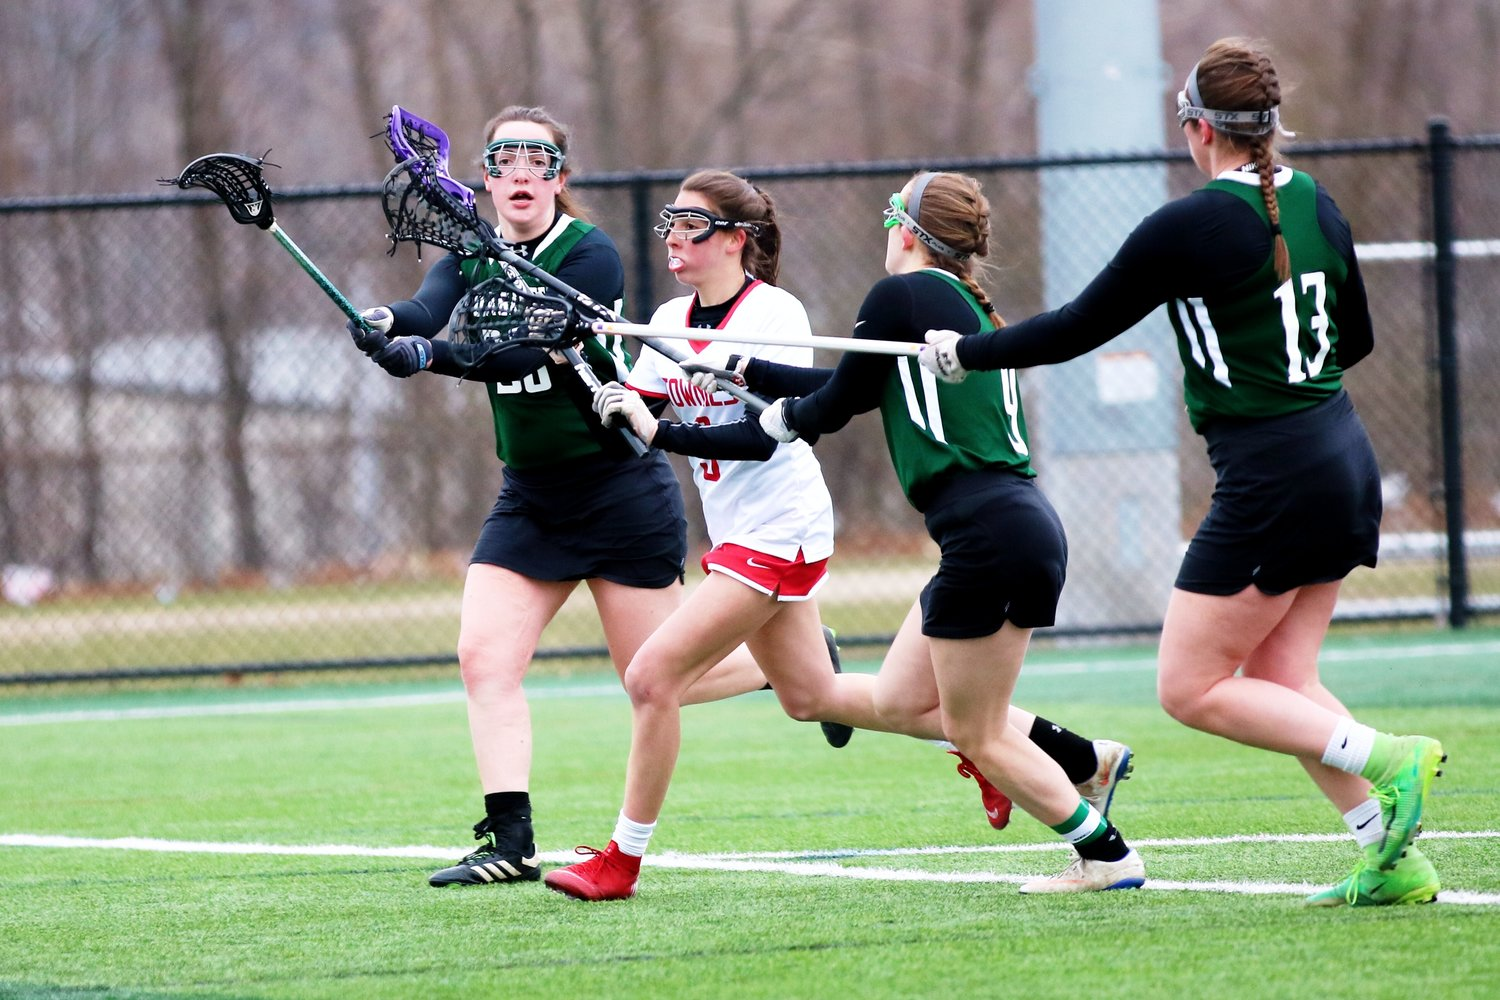 Ashley Dias on the attack for EP girls LAX